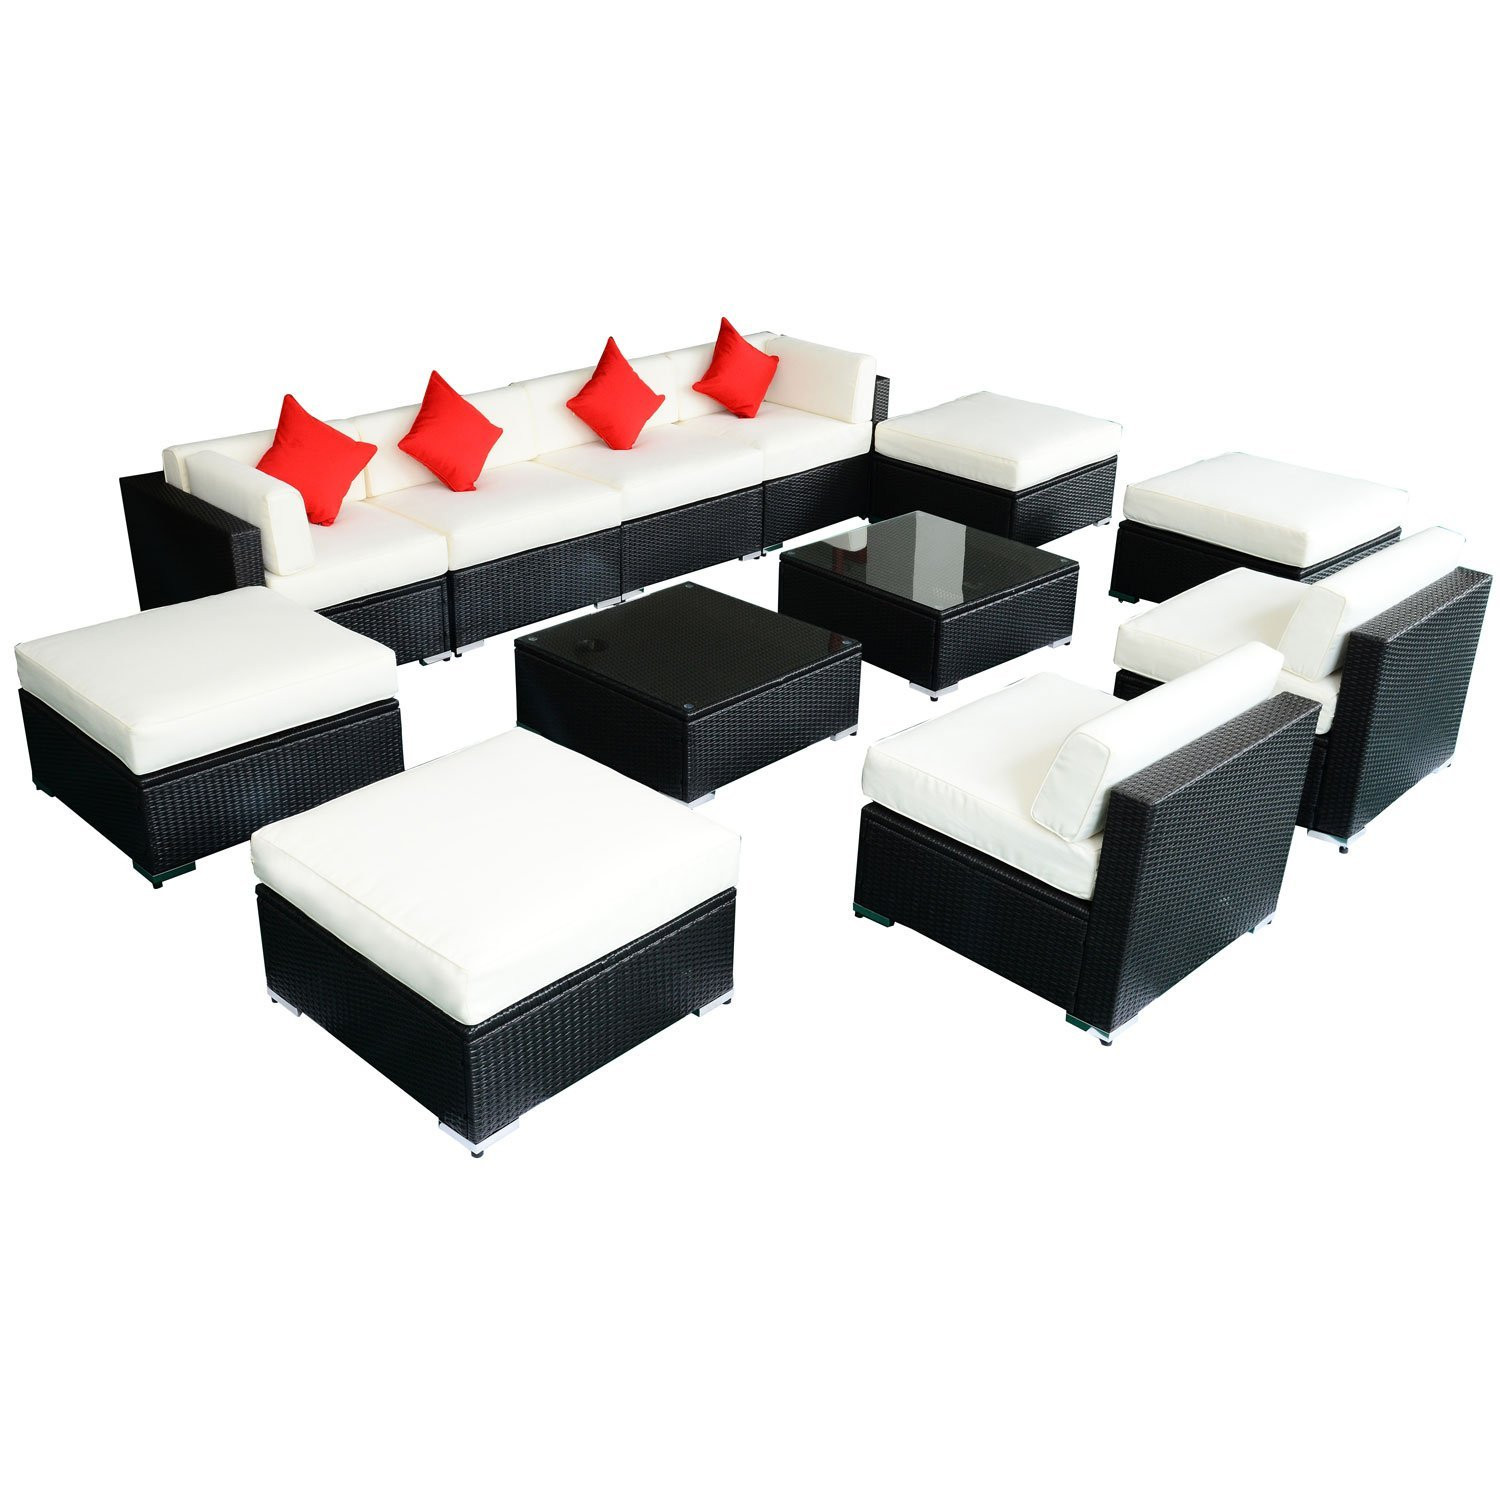 Best ideas about Outsunny Patio Furniture . Save or Pin Outsunny 12 pc Outdoor Deluxe Rattan Sofa Sectional Patio Now.